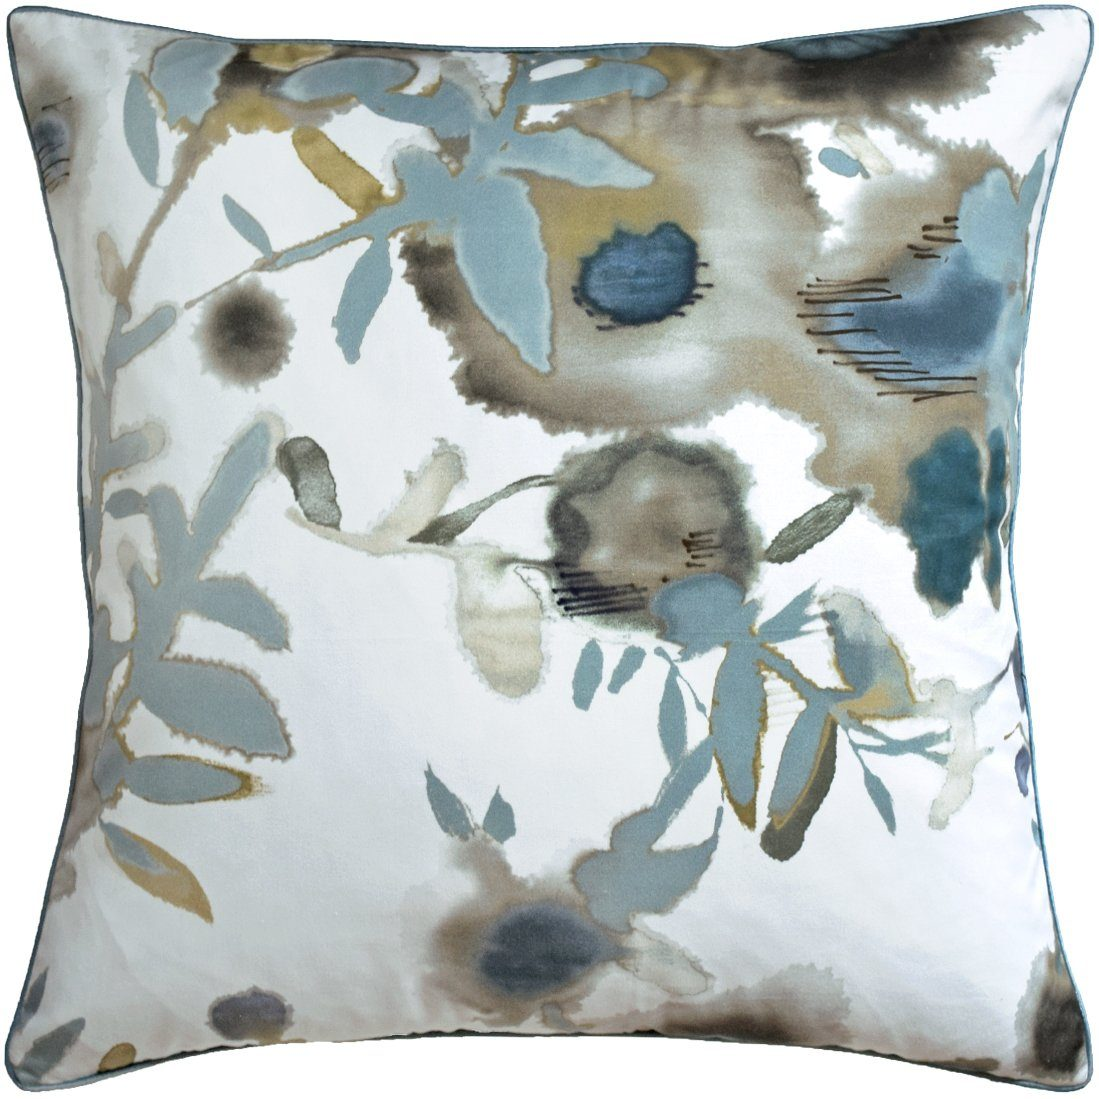 Open Spaces Pillow in Beige & Teal by Ryan Studio | Fig Linens